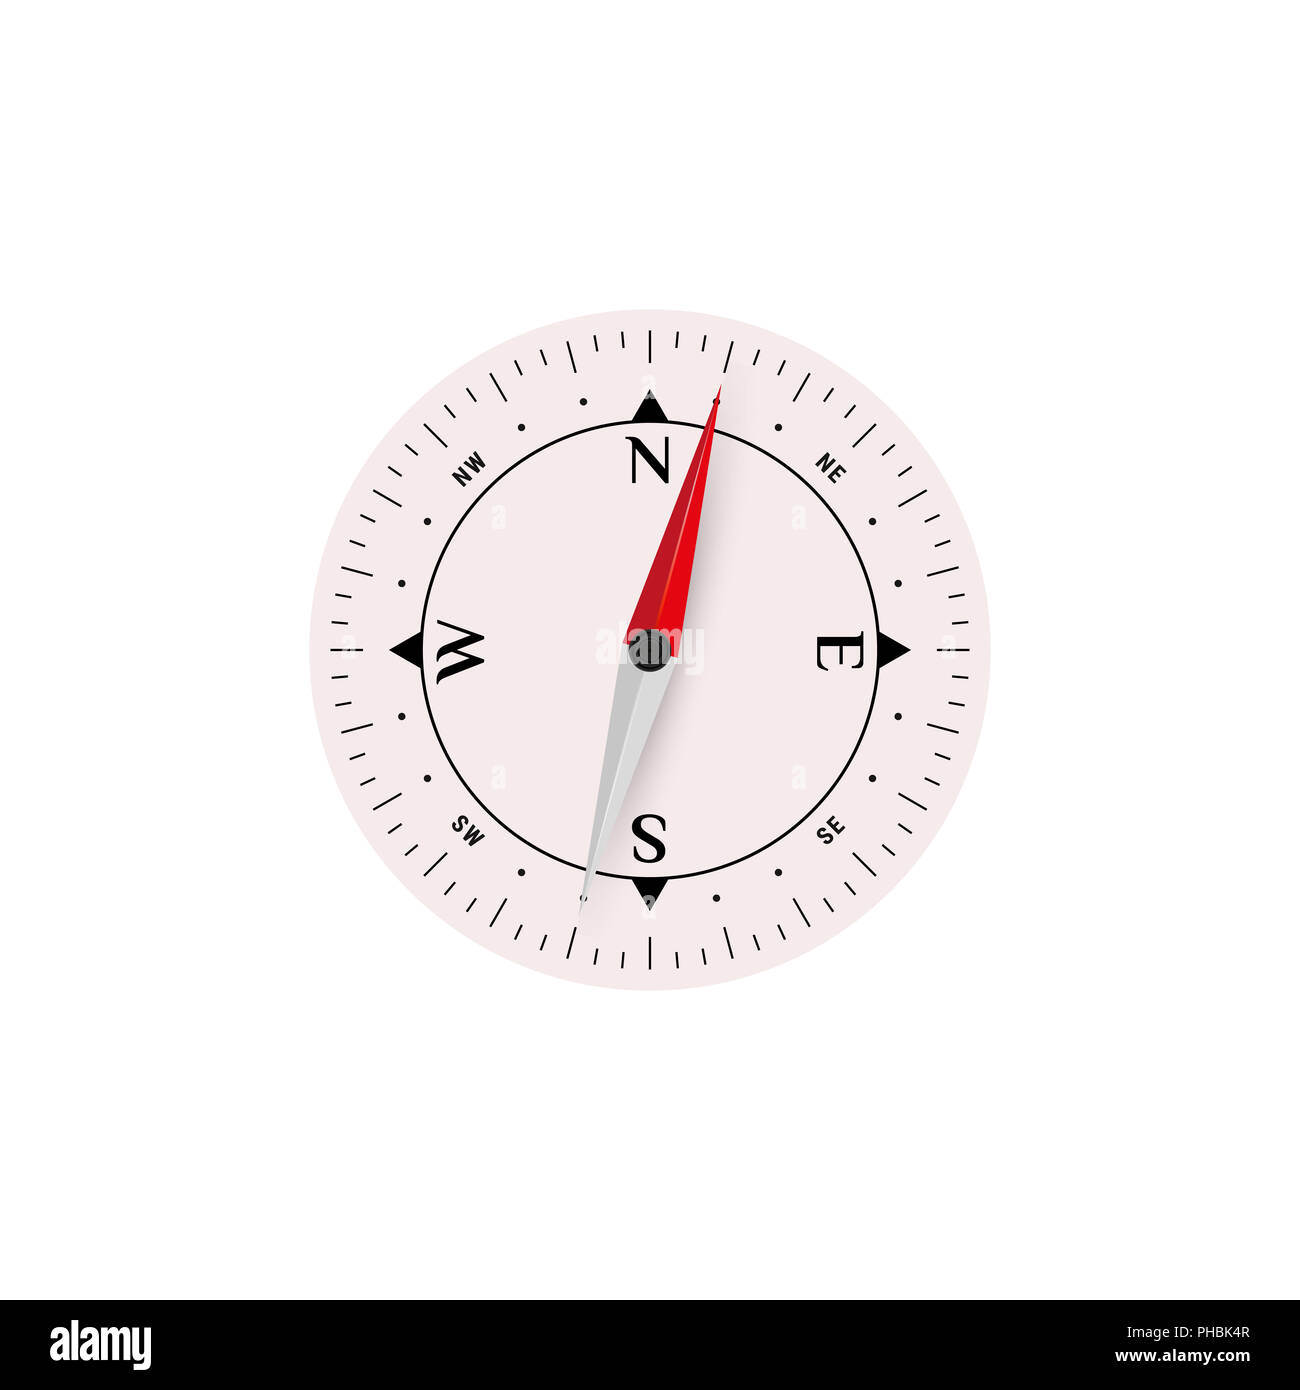 3D Compass Icon Set without Glass, Map Navigation Object Isolated on White. Illustration. - Stock Image